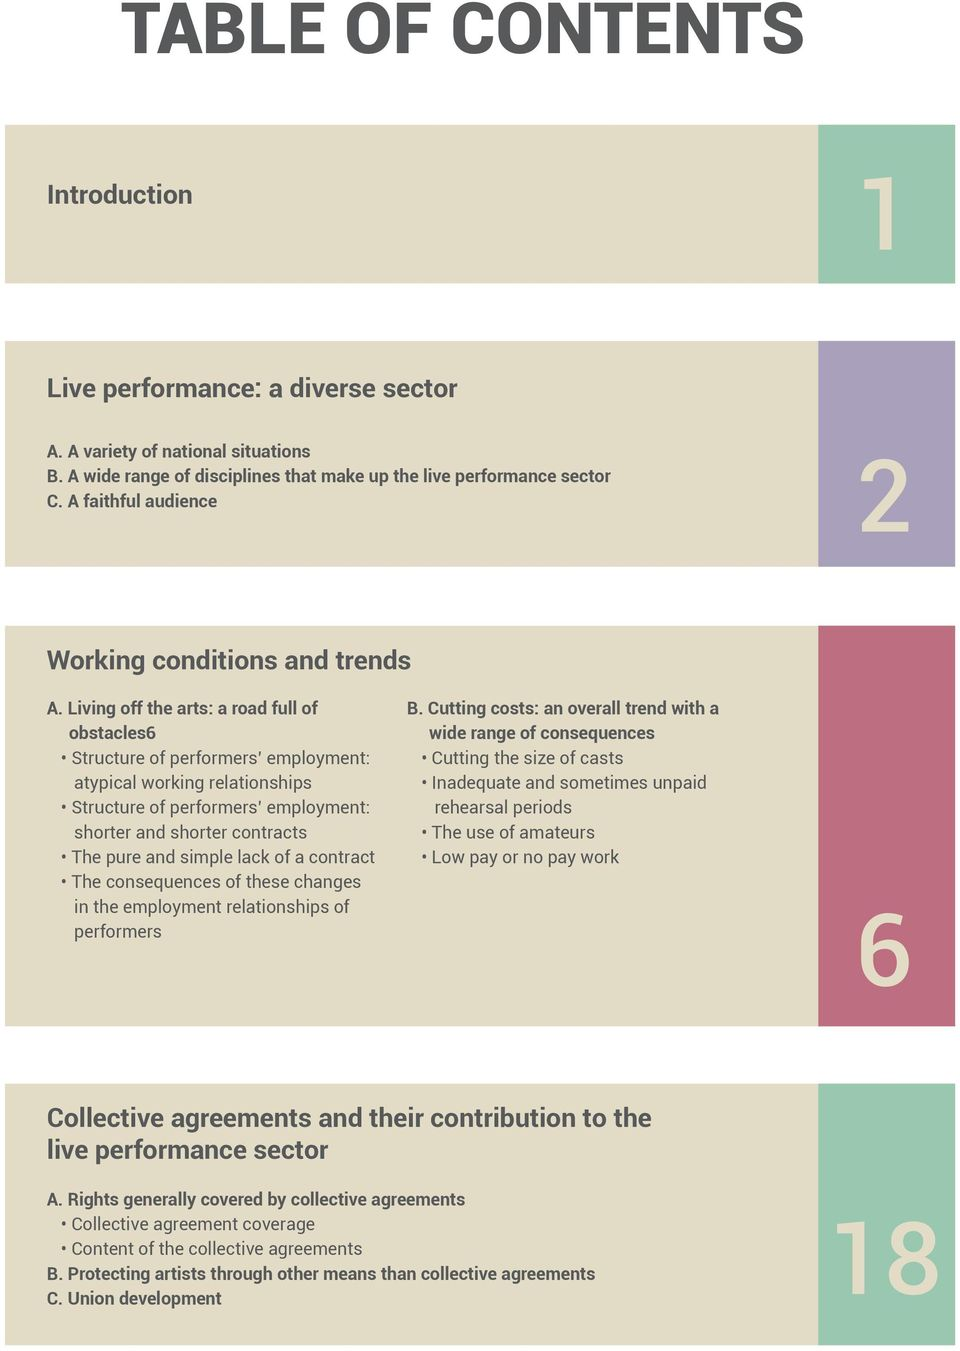 Living off the arts: a road full of obstacles6 Structure of performers employment: atypical working relationships Structure of performers employment: shorter and shorter contracts The pure and simple